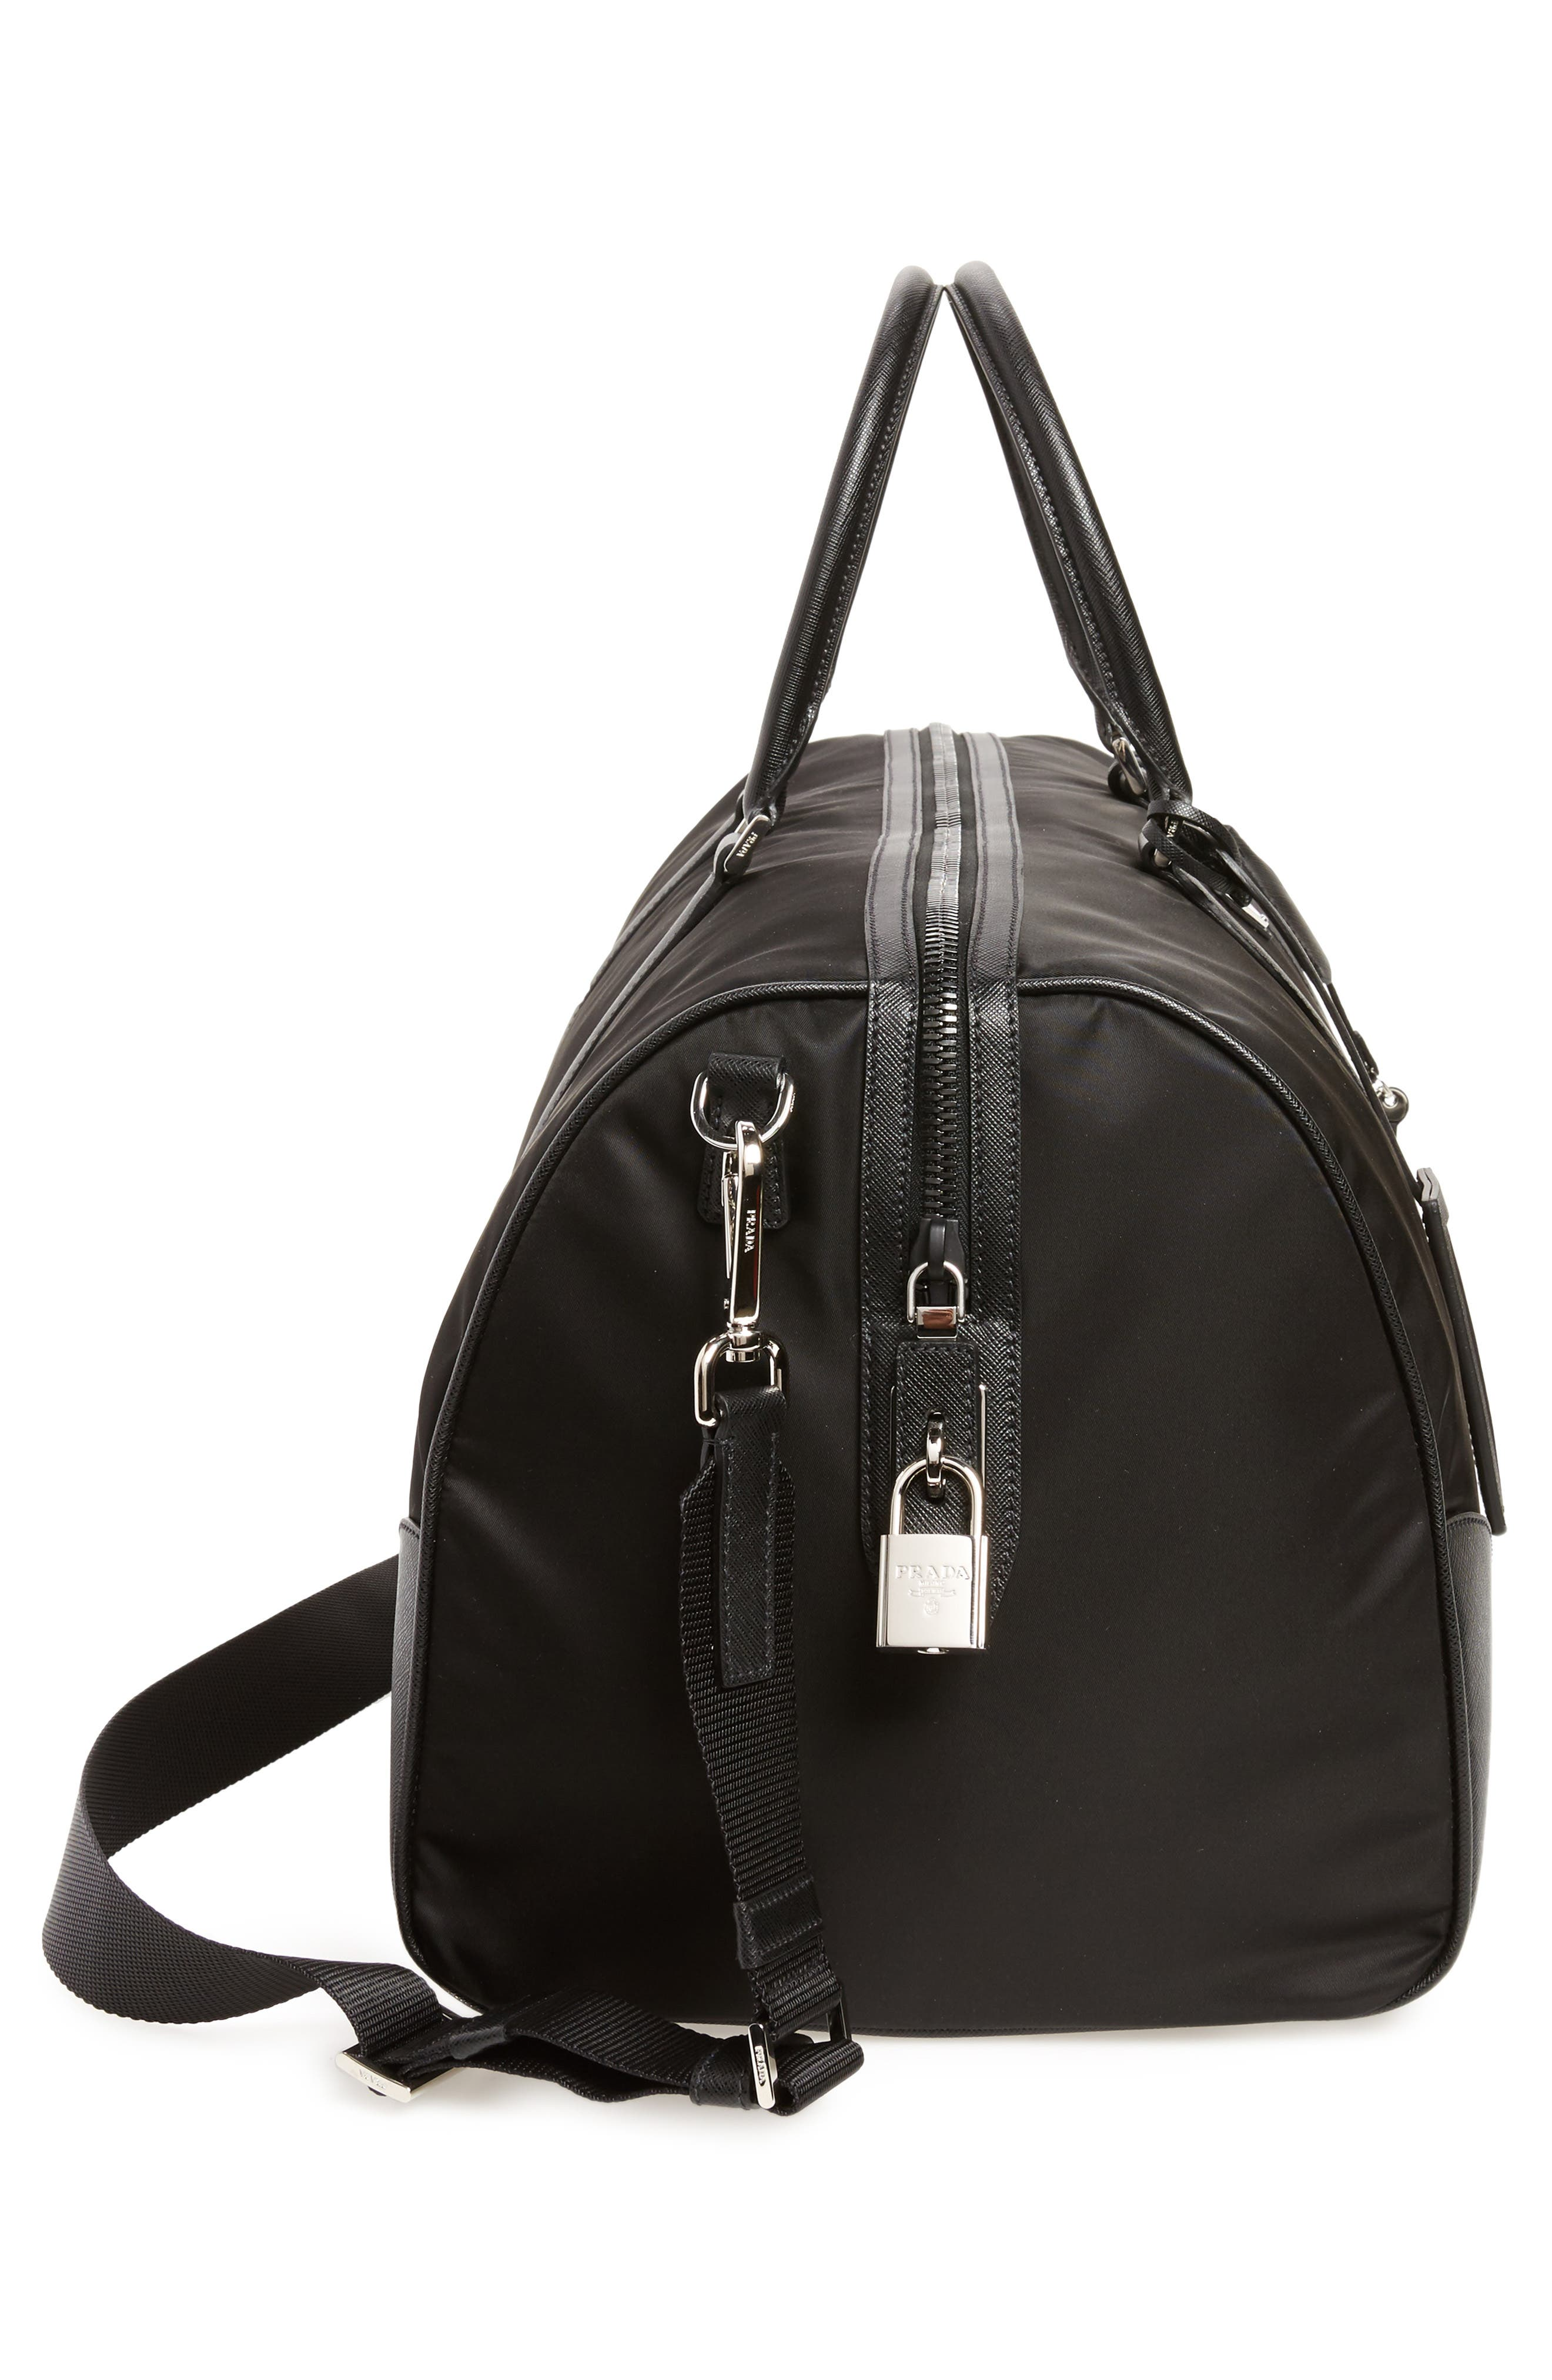 Nylon & Saffiano Leather Bowling Bag,                             Alternate thumbnail 5, color,                             Nero